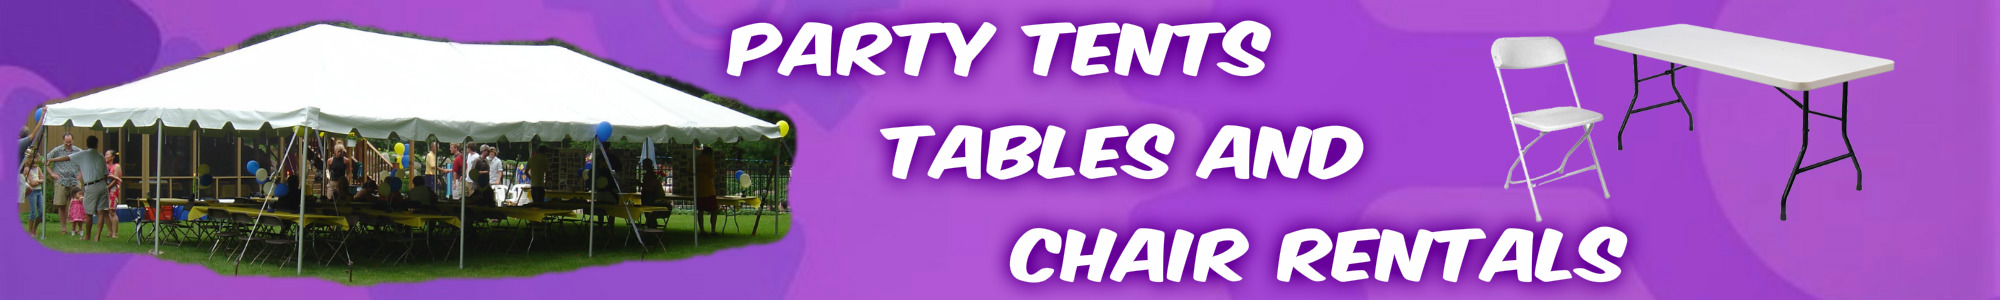 Party Tents Tables Chairs